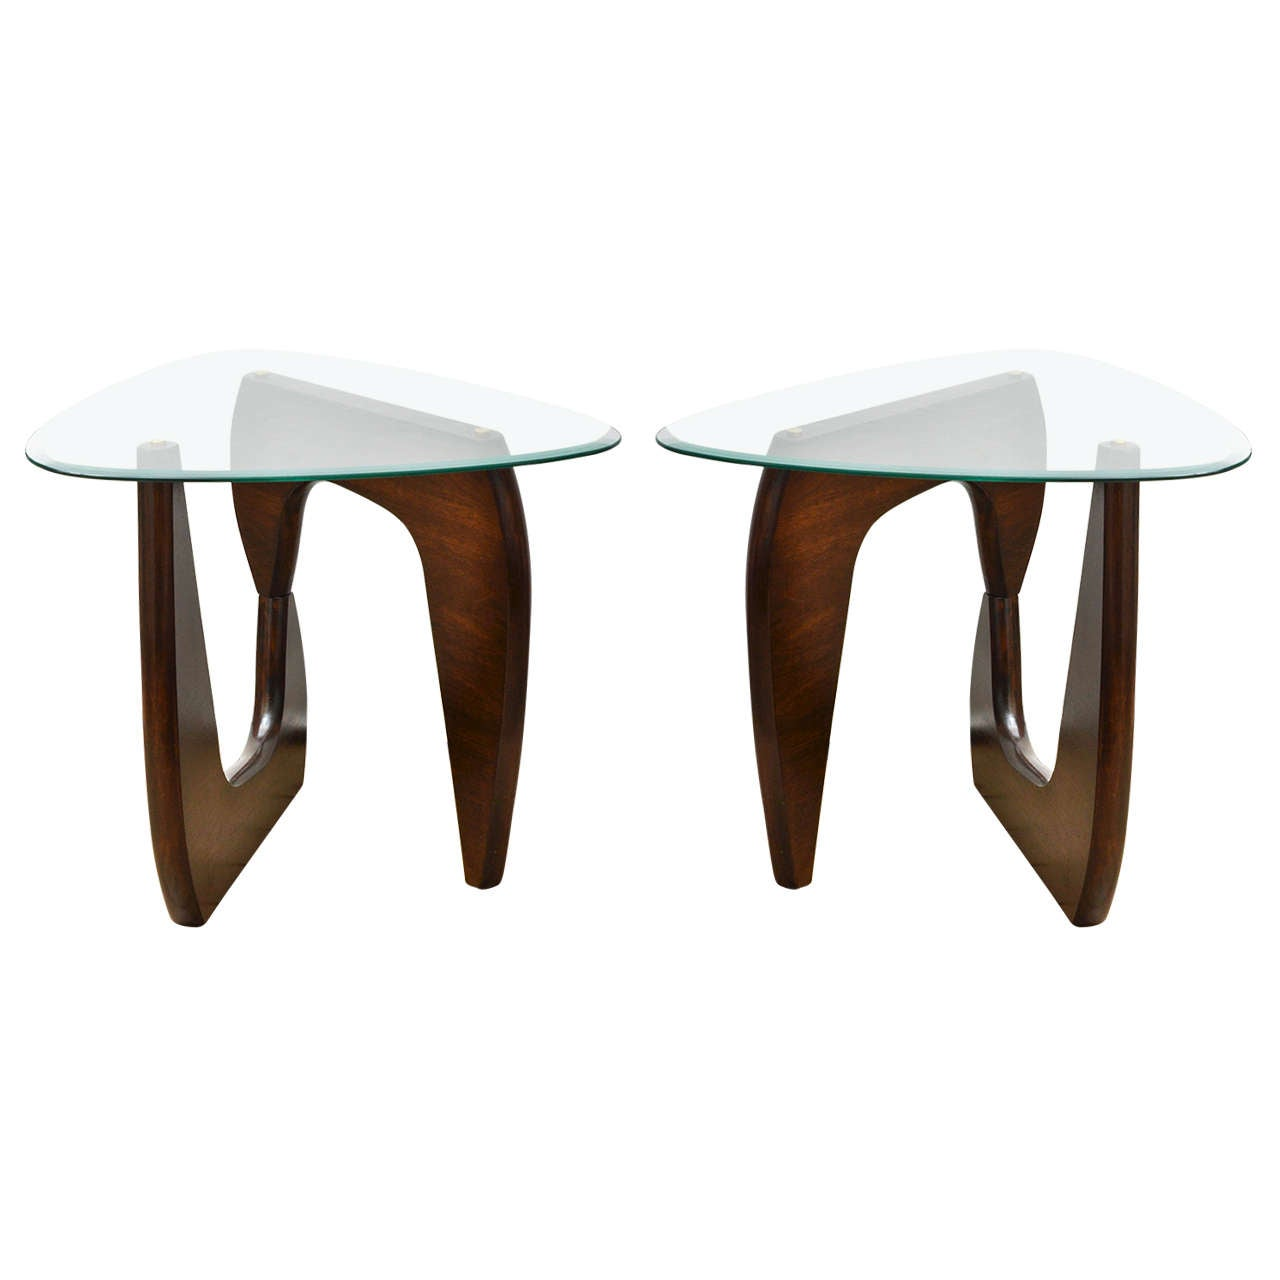 pair of wood base glass triangular top tables at stdibs - pair of wood base glass triangular top tables